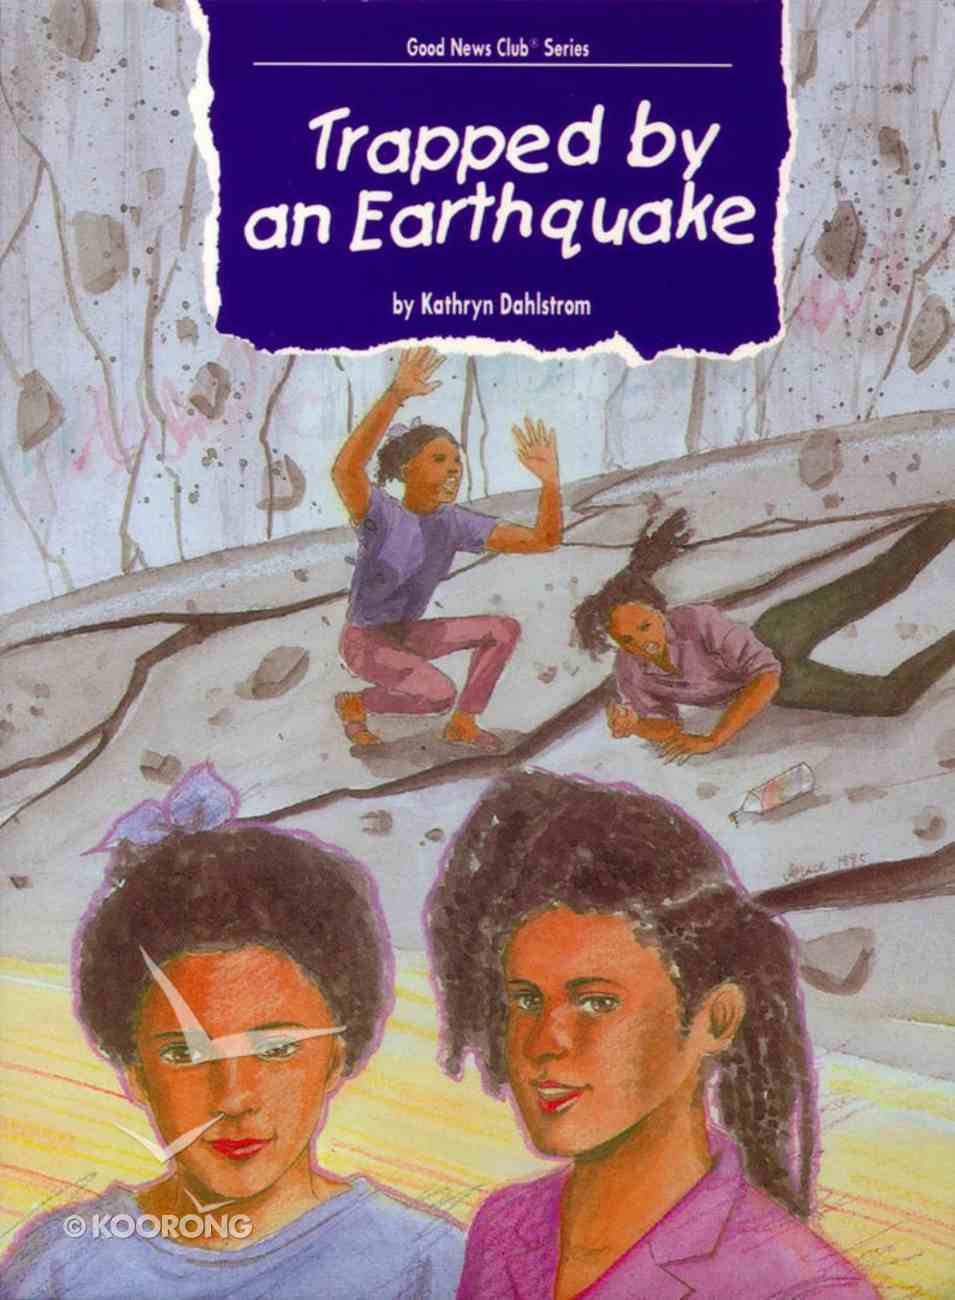 Gnc: Trapped By An Earthquake (Good New Club Series) Paperback